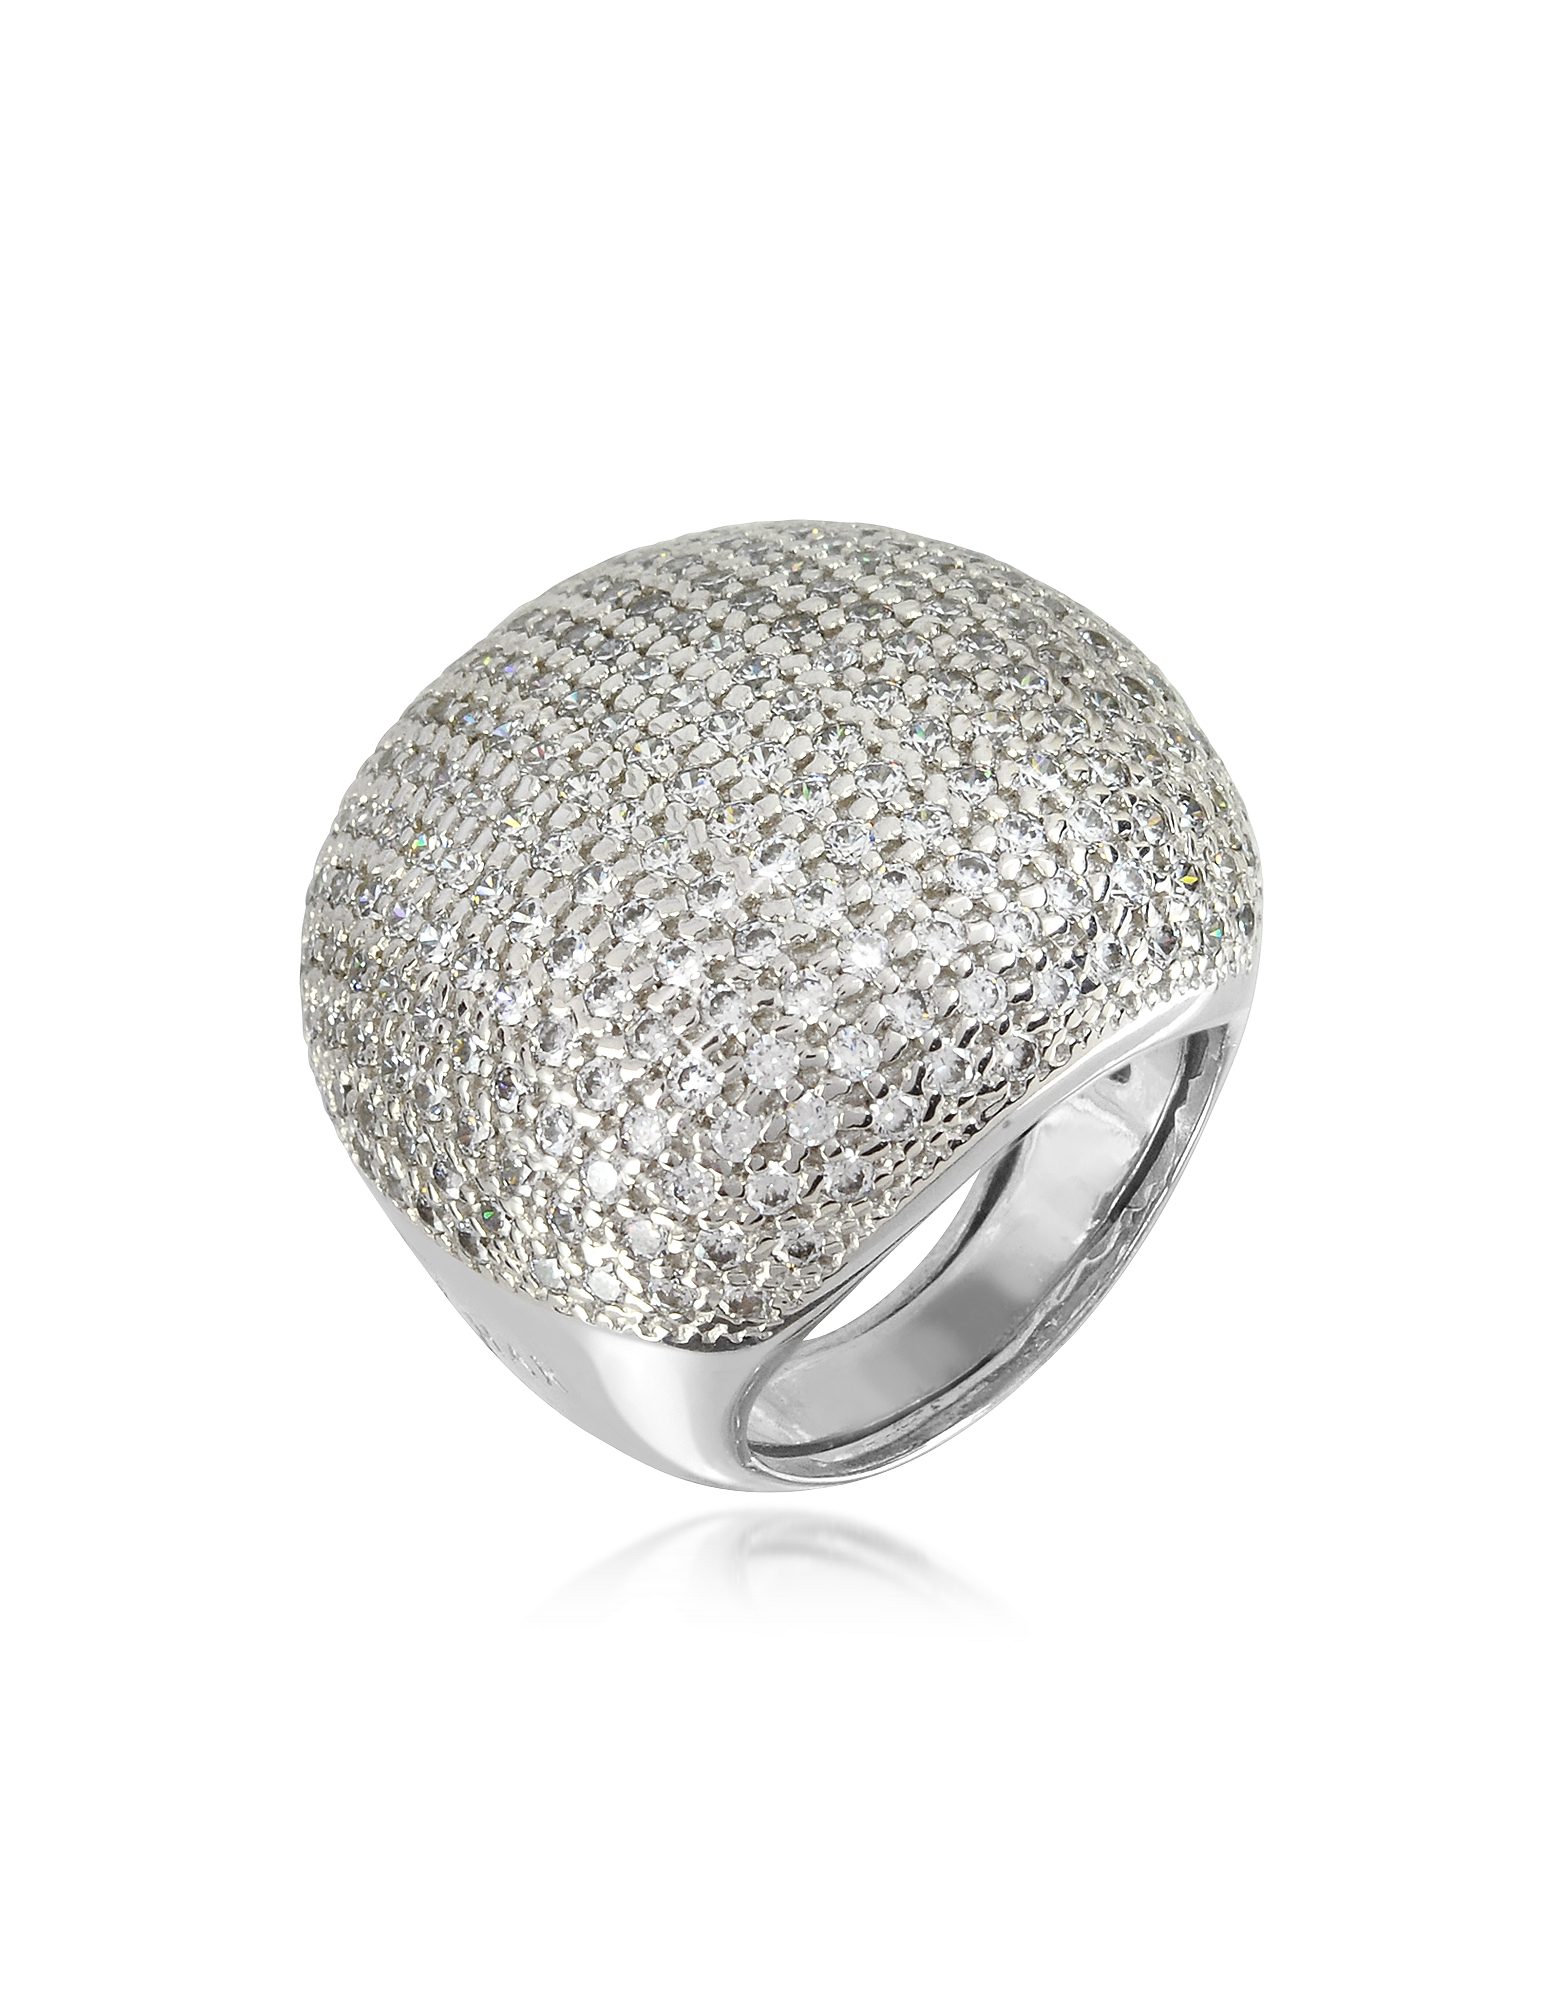 Azhar Rings, Large Cubic Zirconia Sterling Silver Cocktail Ring